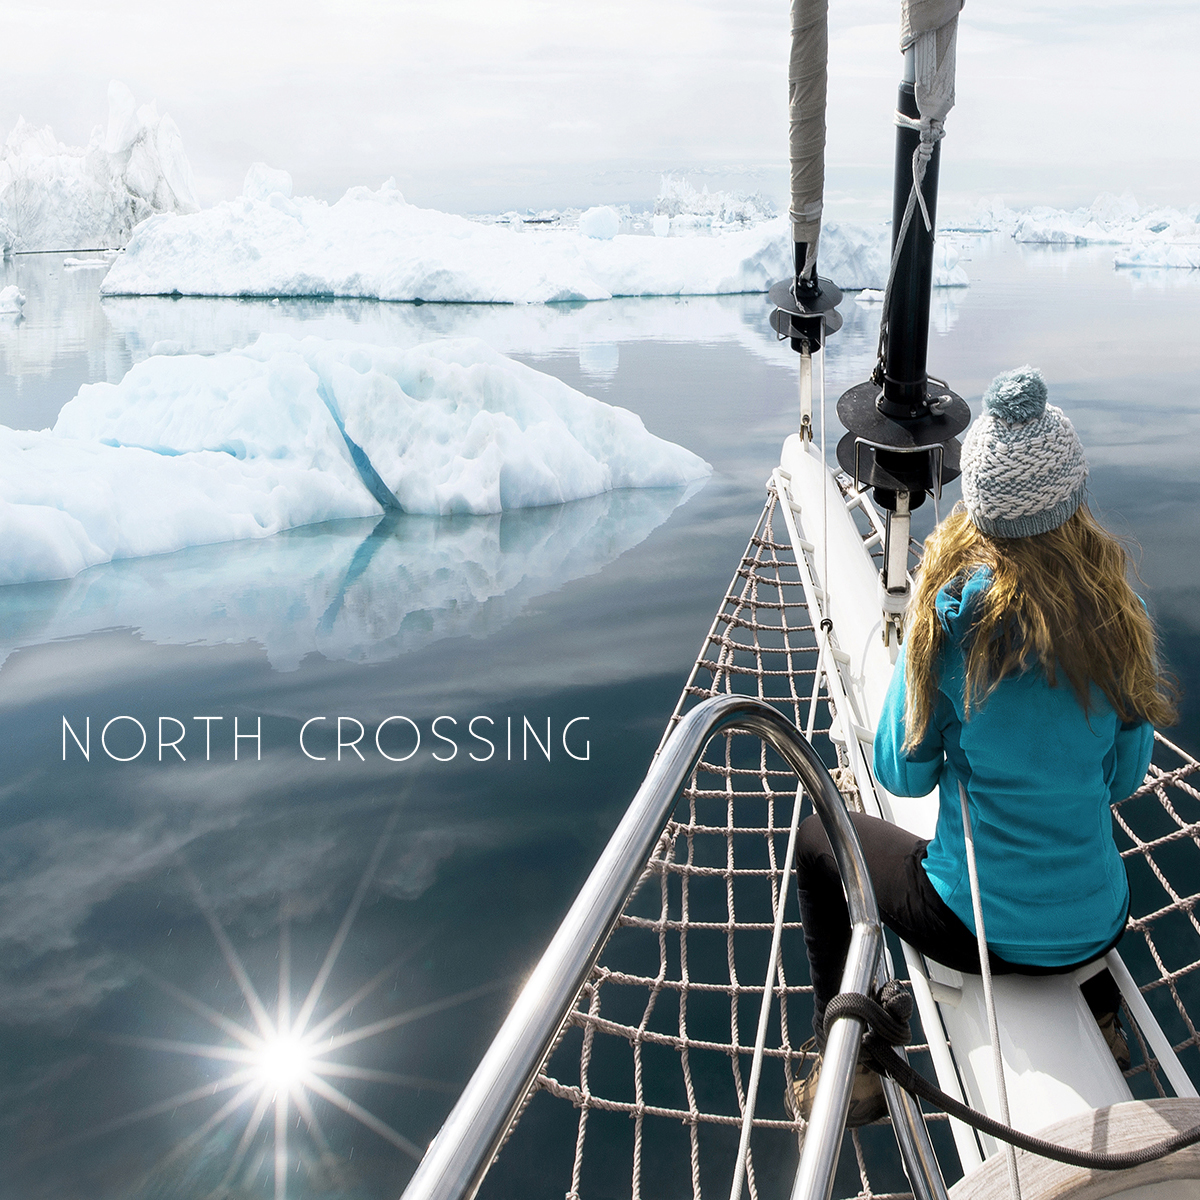 North Crossing par Elise Fournier Photographe